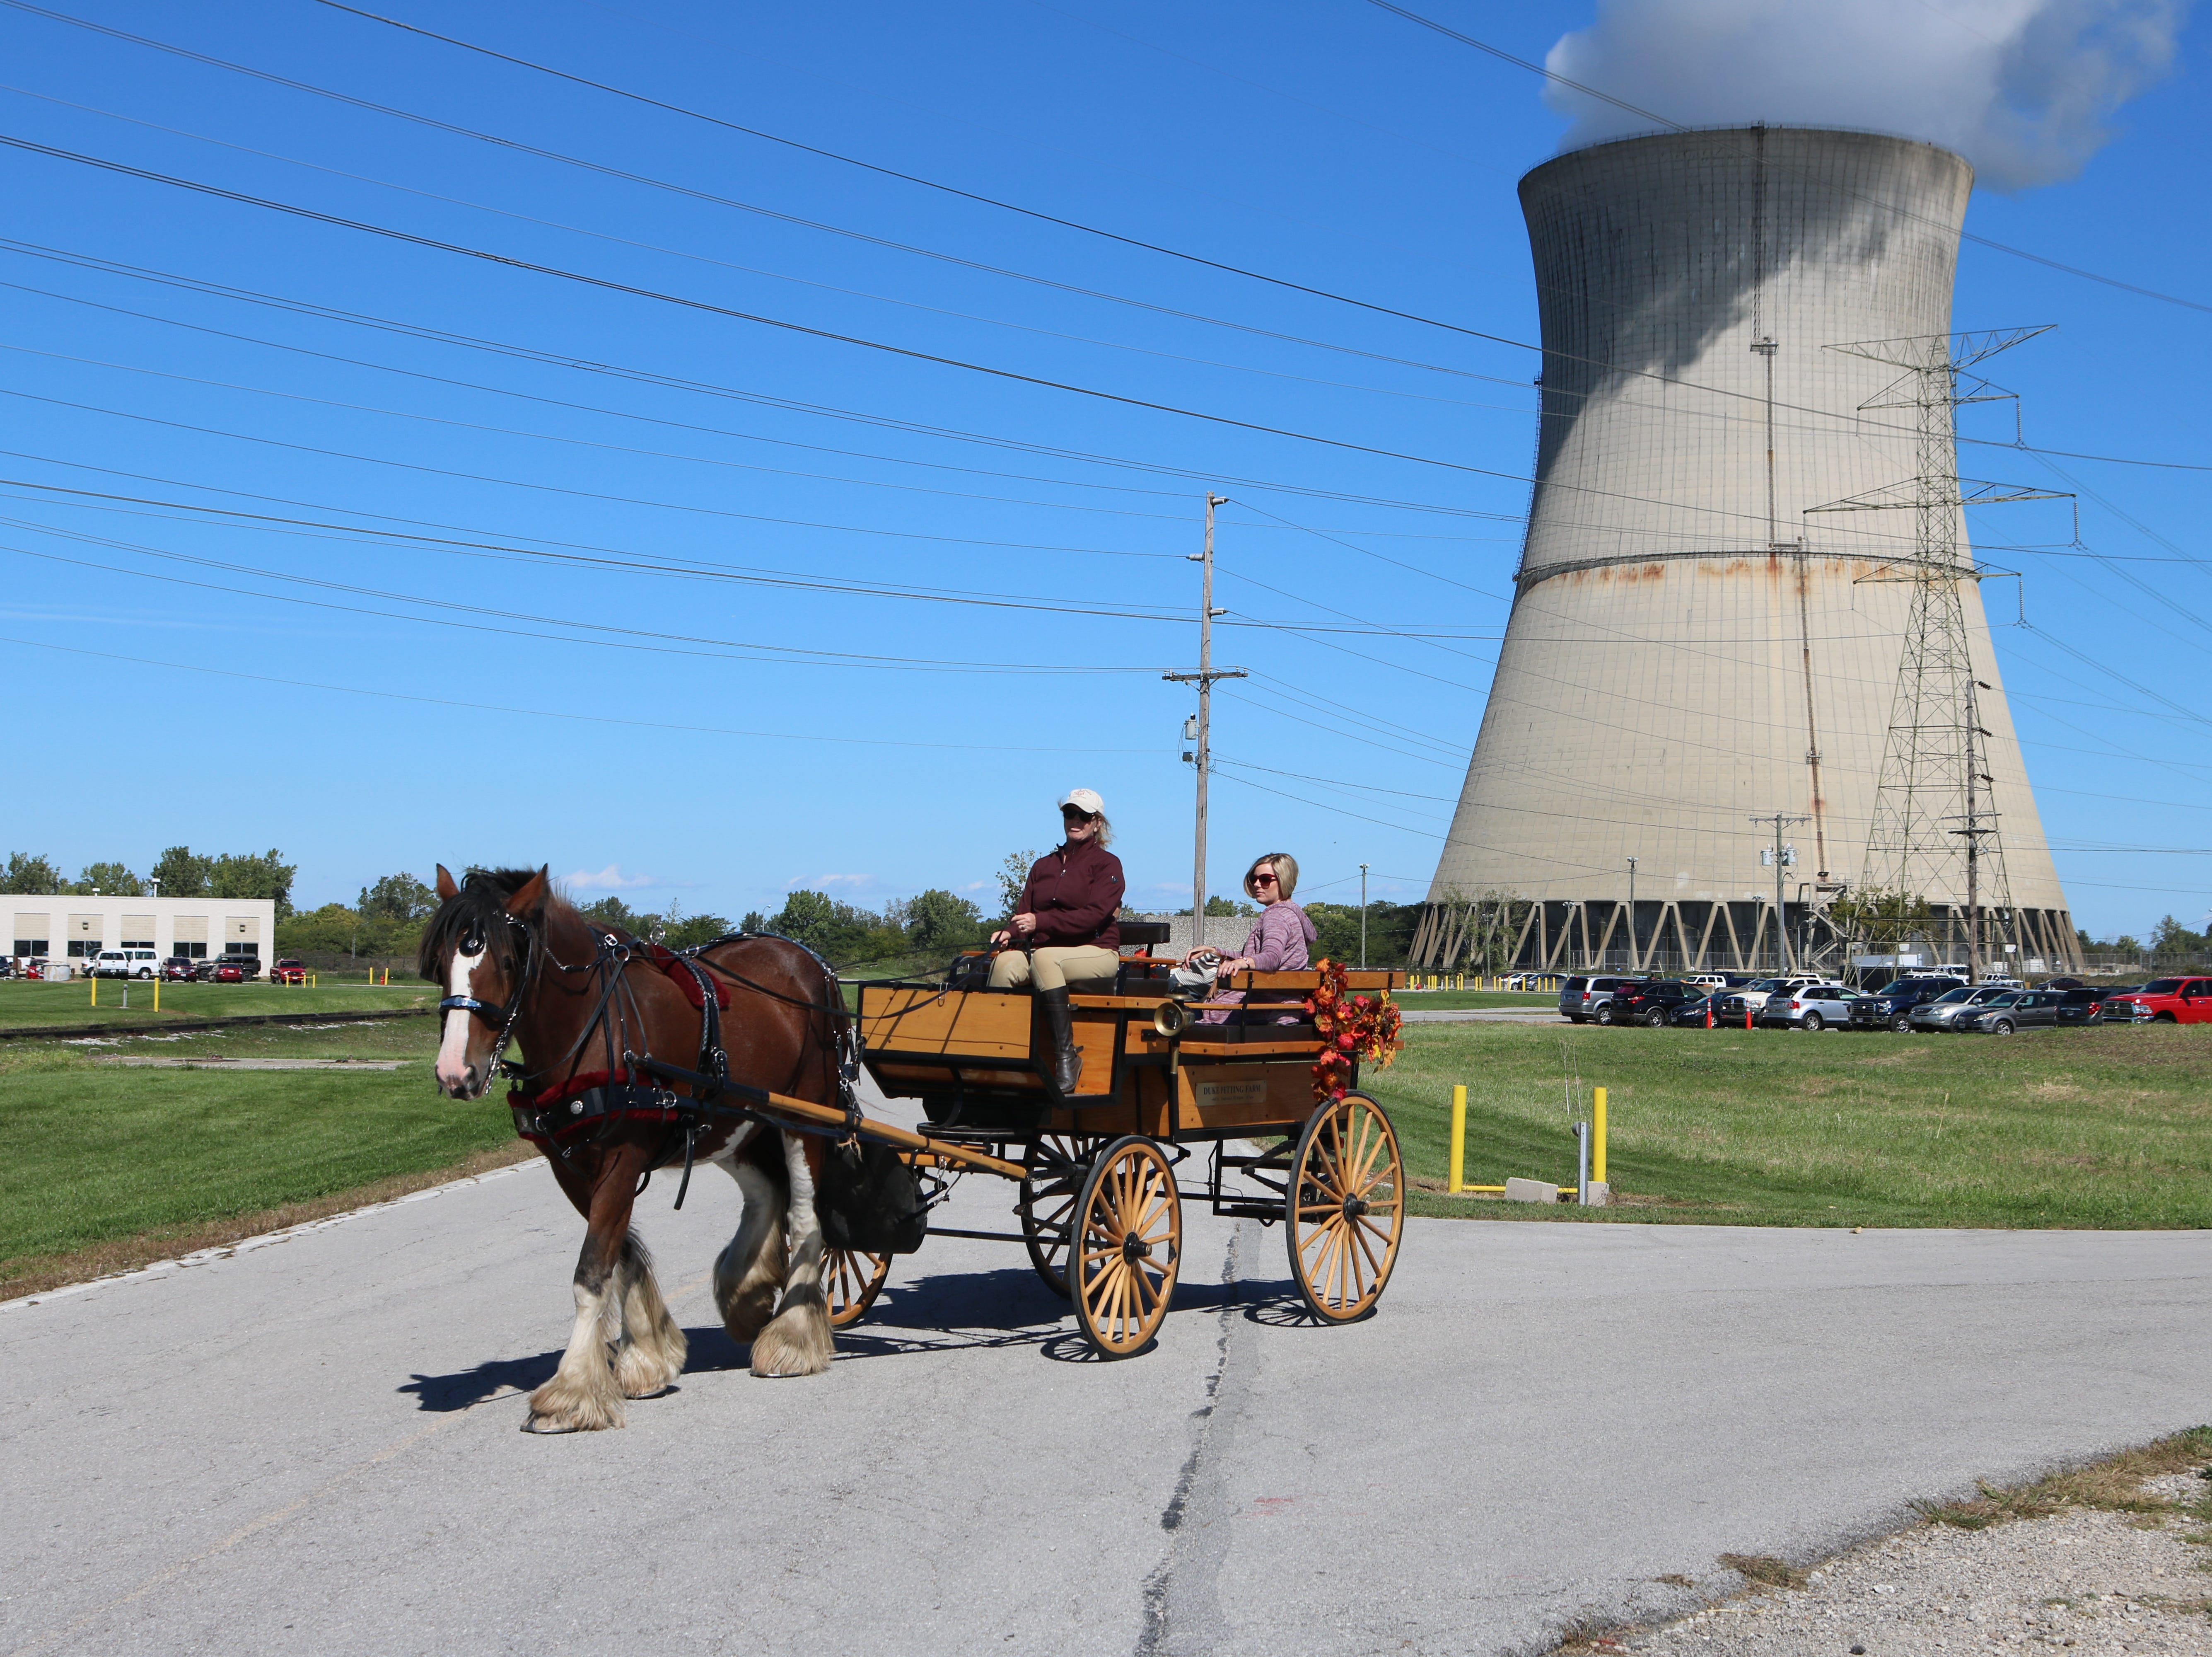 The Davis-Besse Nuclear Power Station hosted the second annual Cruisin' To The Future Car Show and Community Day on Saturday.